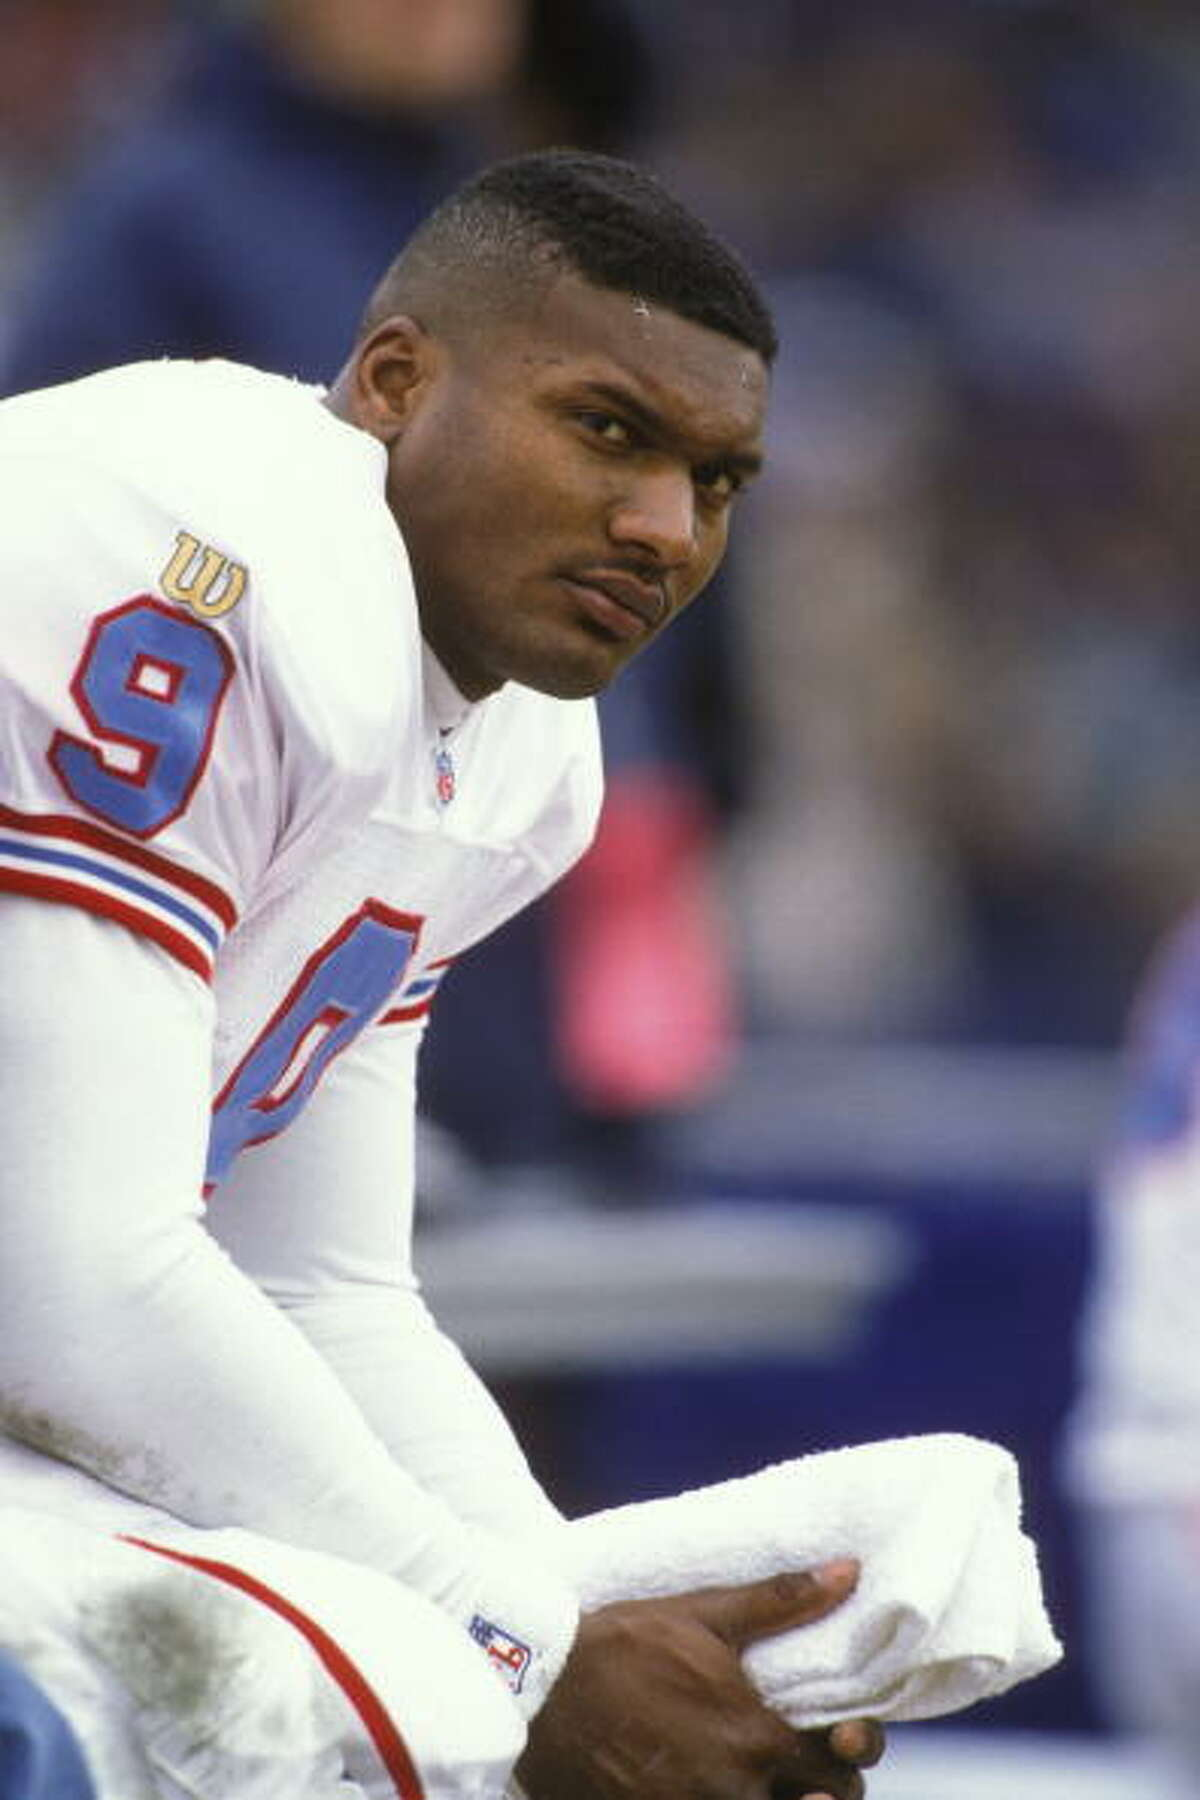 BALTIMORE, MD - DECEMBER 22: Steve McNair #9 of the Houston Oilers during a NFL football game against the Baltimore Ravens on December 22, 1996 at Memorial Stadium in Baltimore, Maryland.